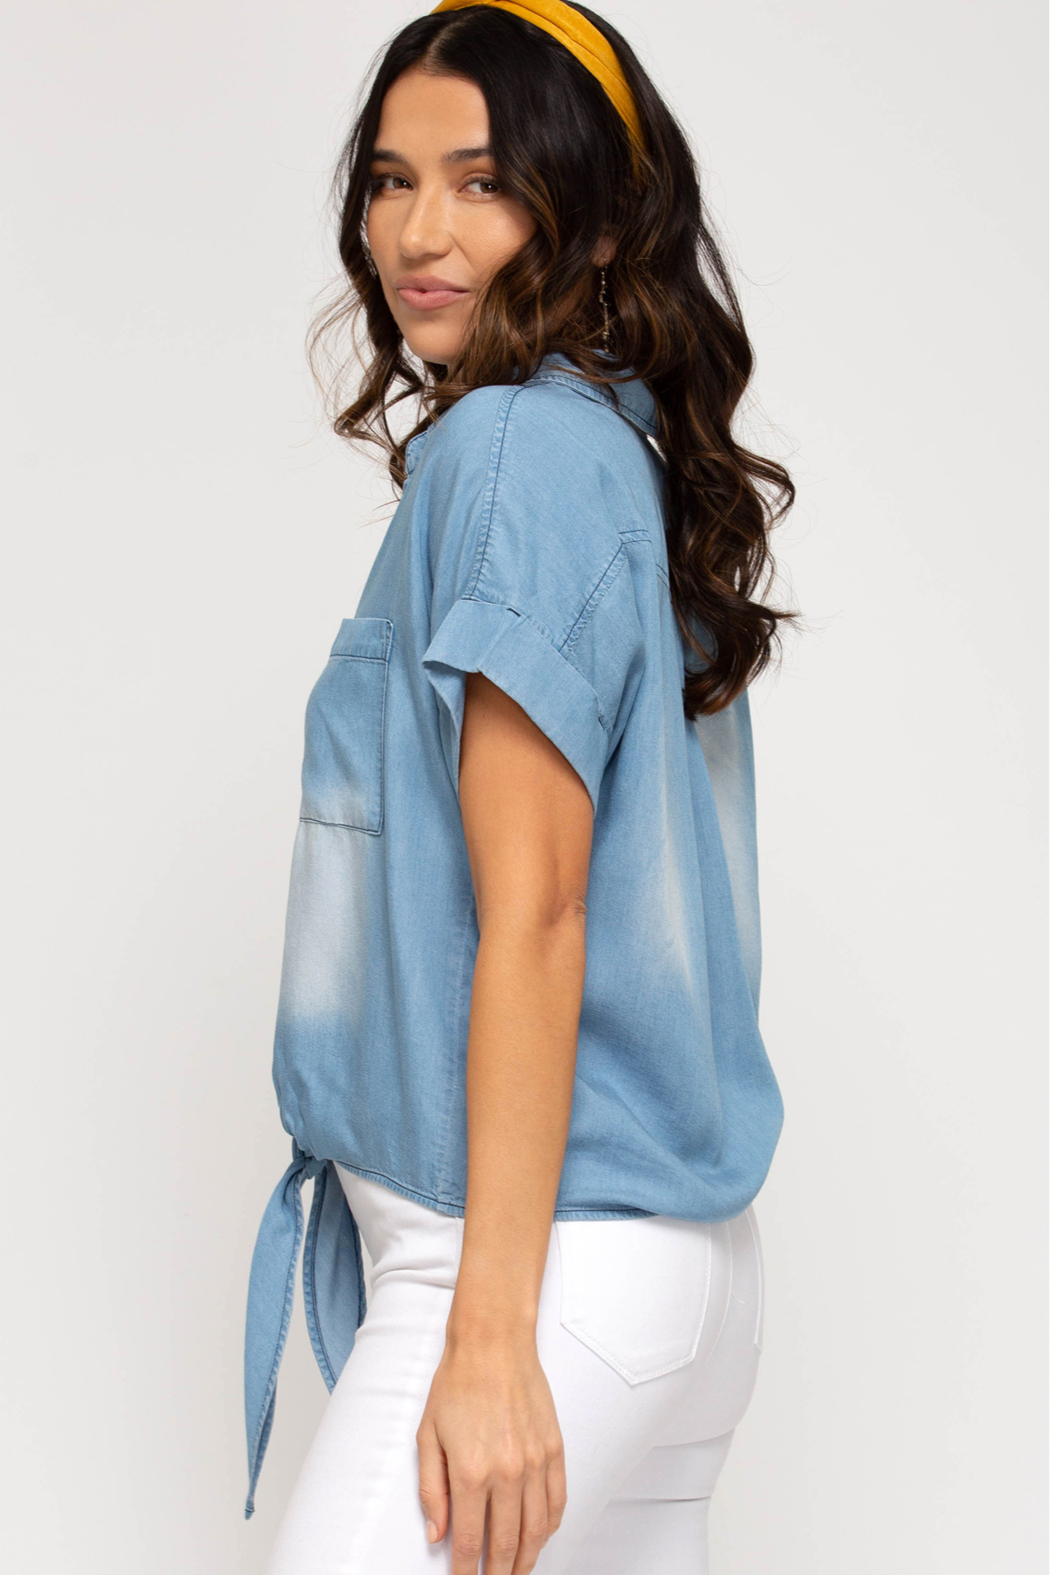 She and Sky SHORT SLV CHAMBRAY TOP W/ FRONT TIE - Front Full Image